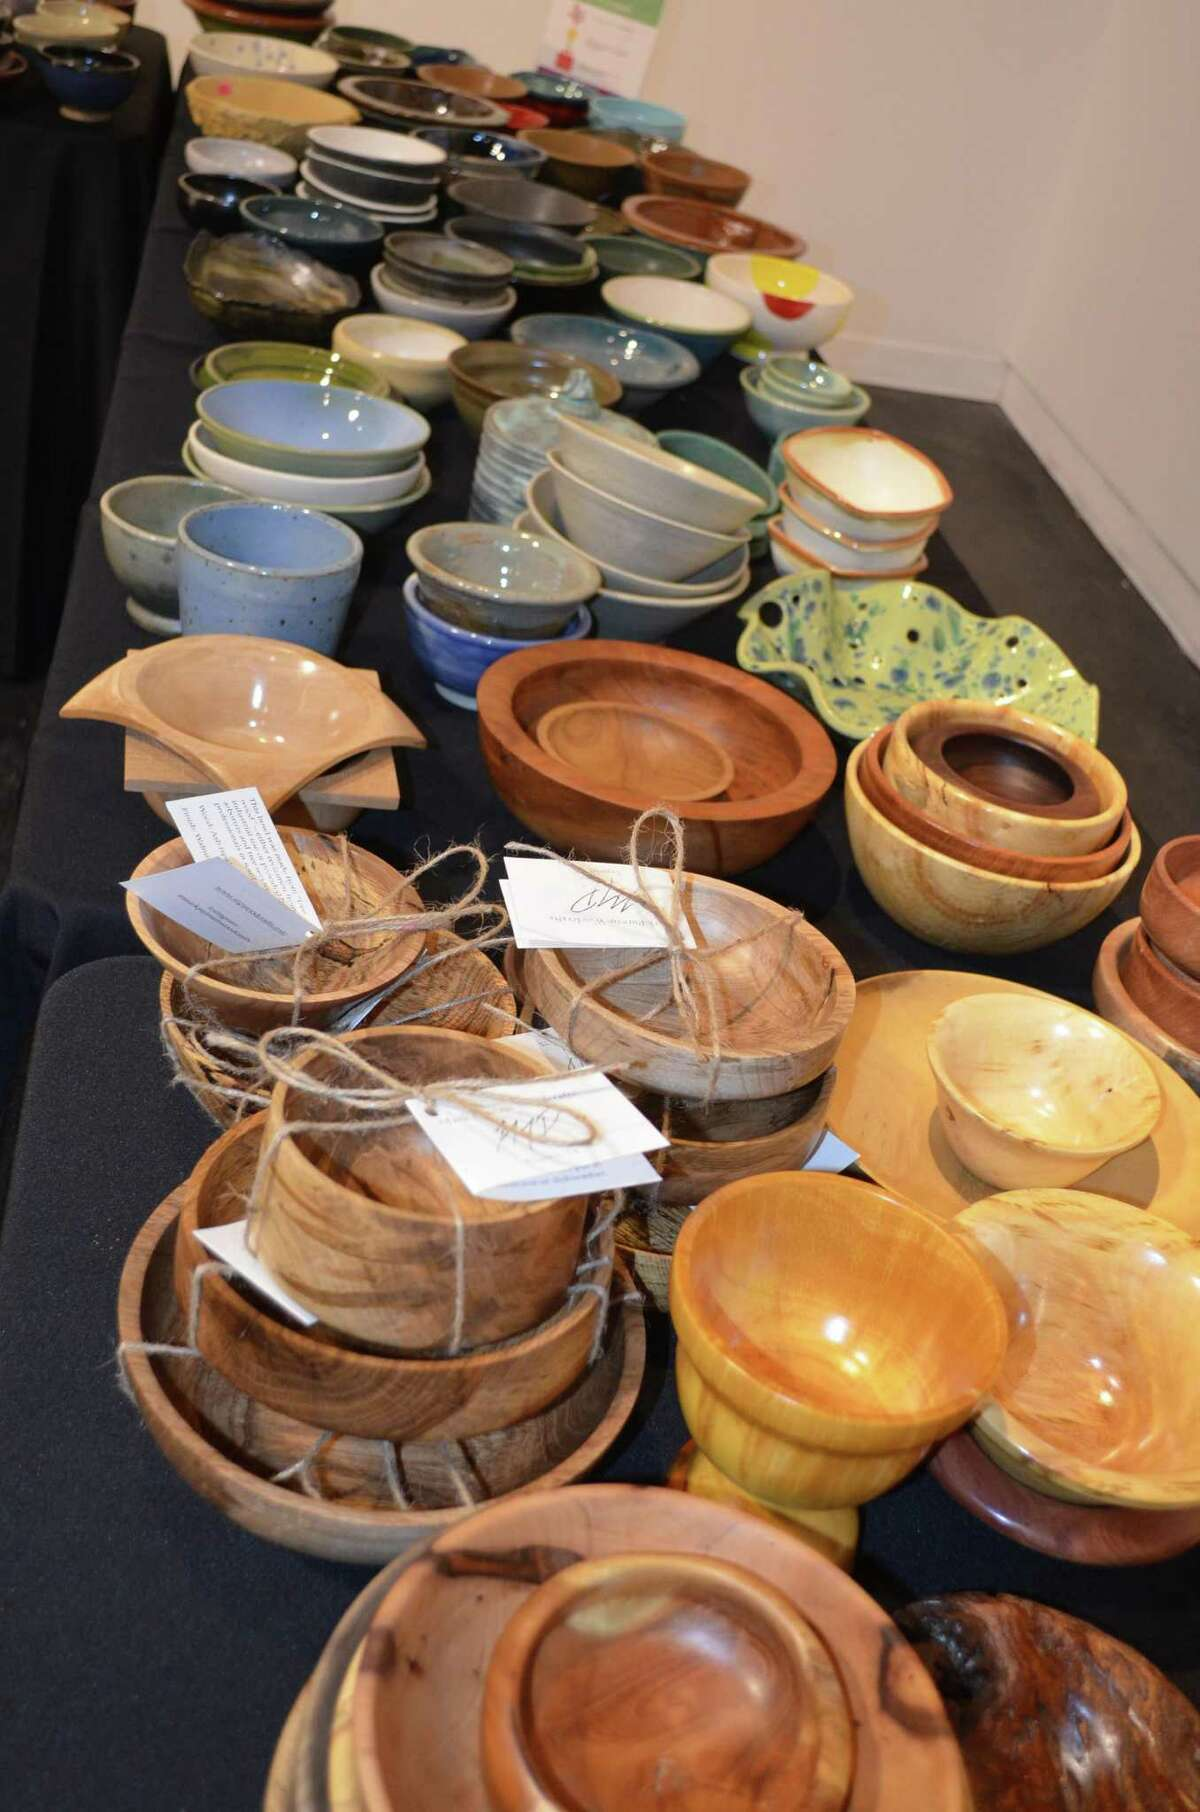 The 15th Annual Empty Bowls Houston event is slated for this Saturday at the Houston Center for Contemporary Craft. Attendees can shop more than 1,500 hand-crafted bowls, each for a $25 donation that includes a soup lunch.